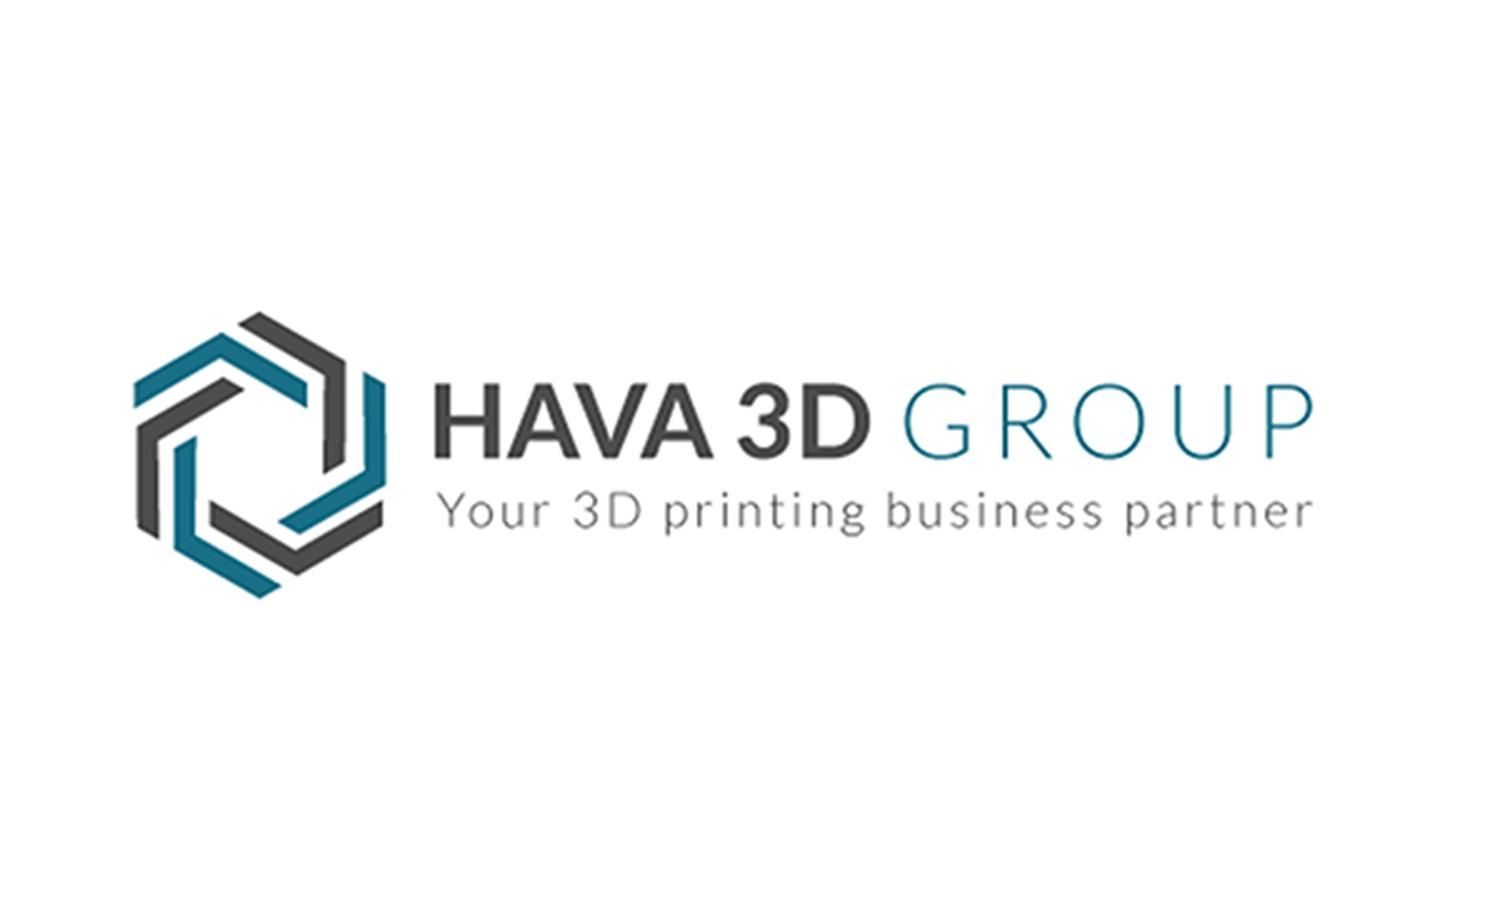 hava-3d-fabrication-additive-impression-a3dm